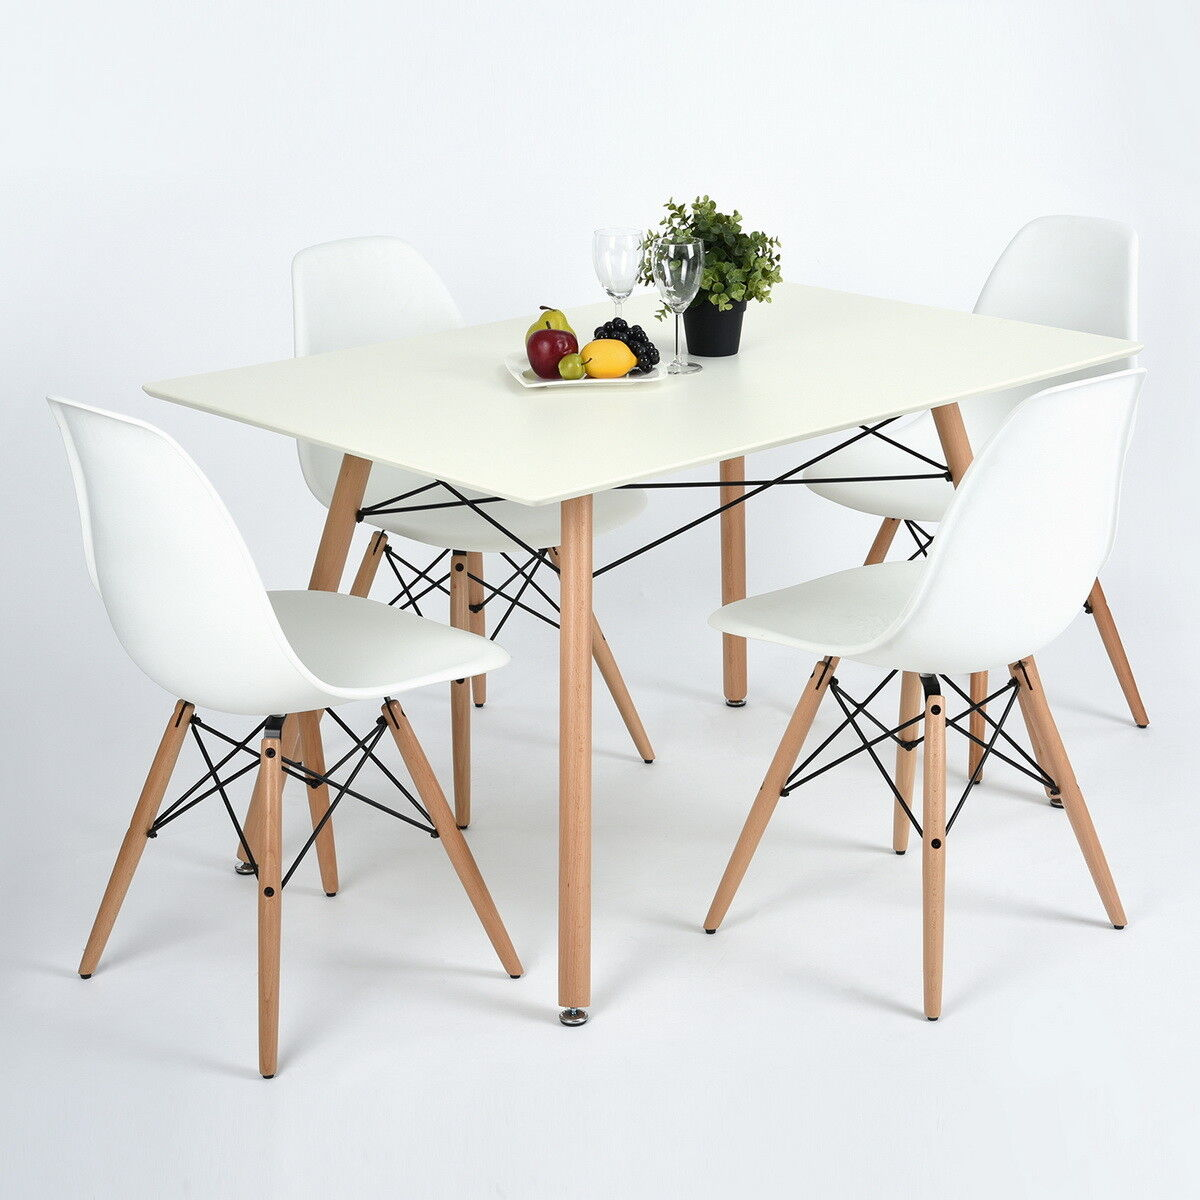 Modern Table And Chairs Details About 4 Dining Chairs With White Rectangular Dining Table Set Modern Table Chairs